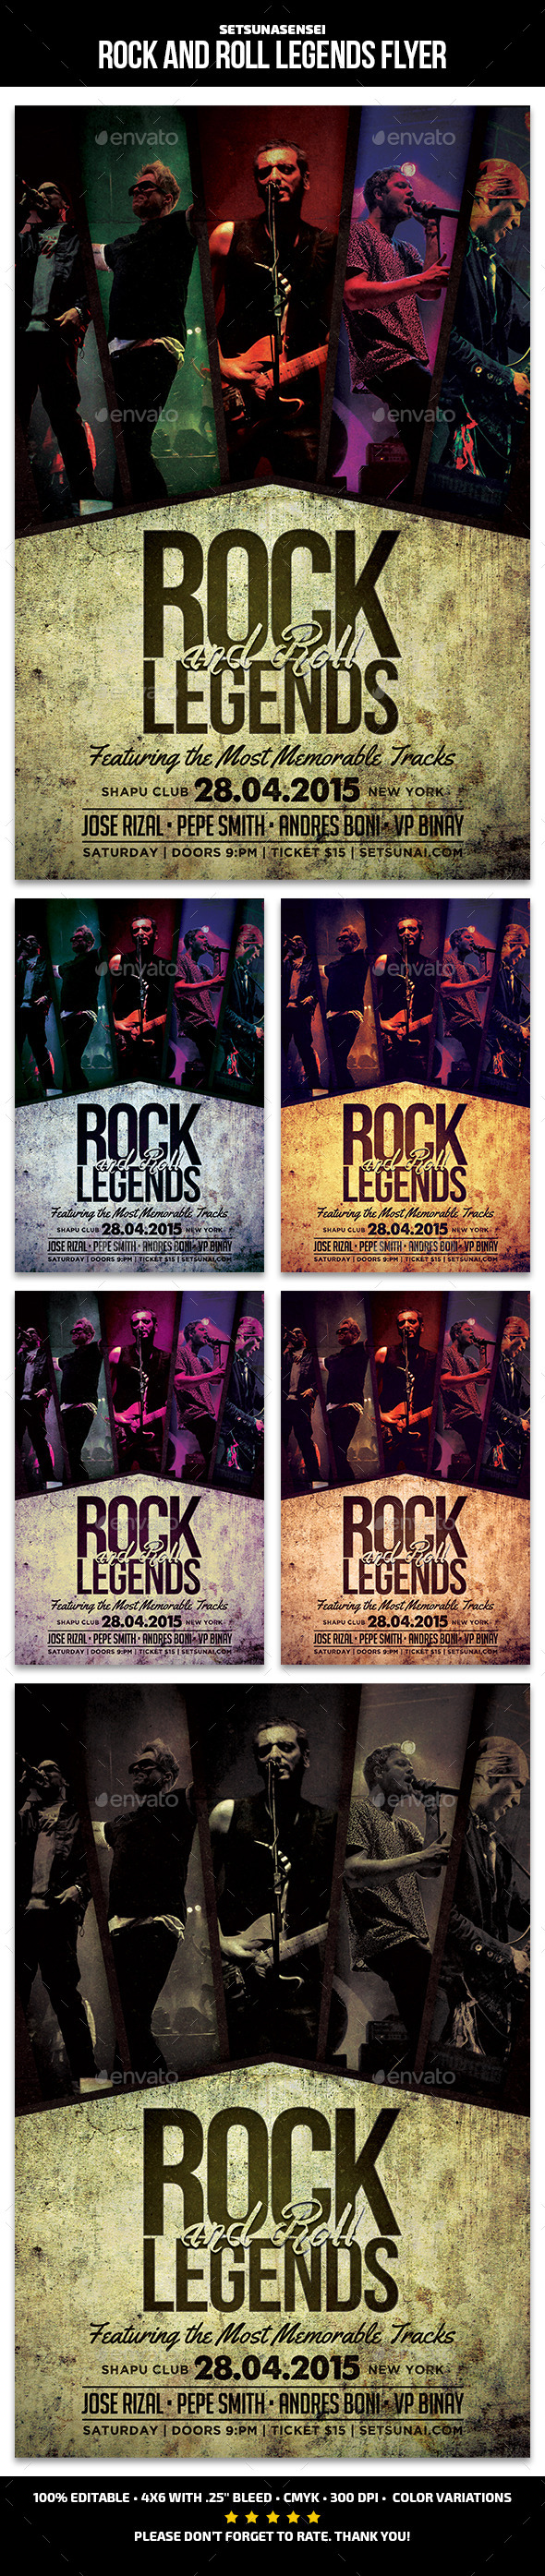 Rock and Roll Legends Flyer